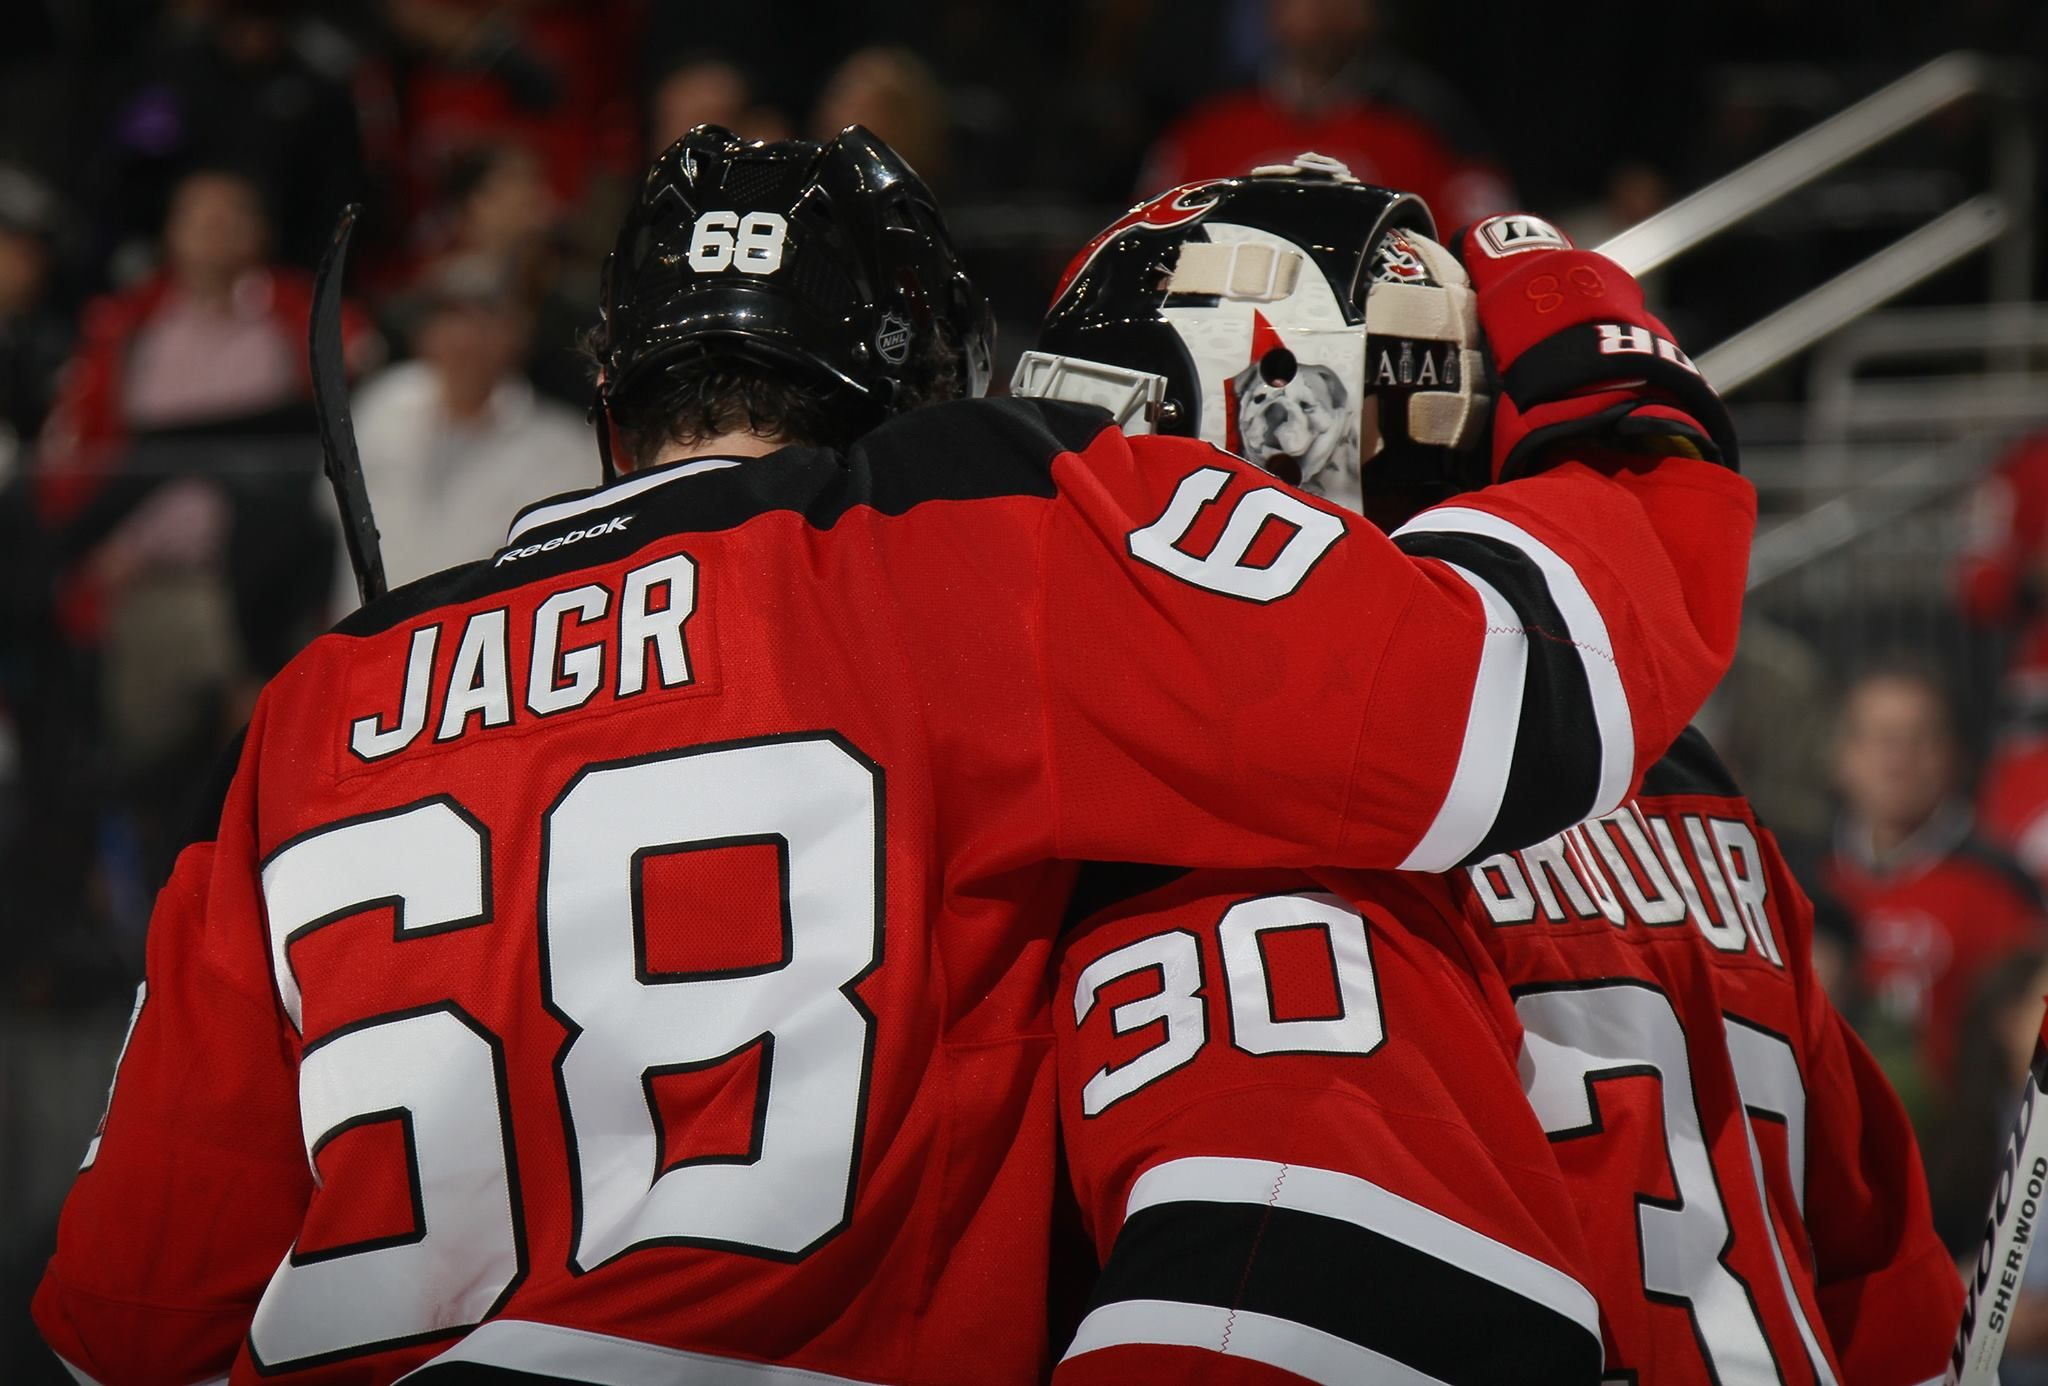 lowest price 1f1a4 0b335 Jaromir Jagr and Martin Brodeur, New Jersey Devils - 2 All ...